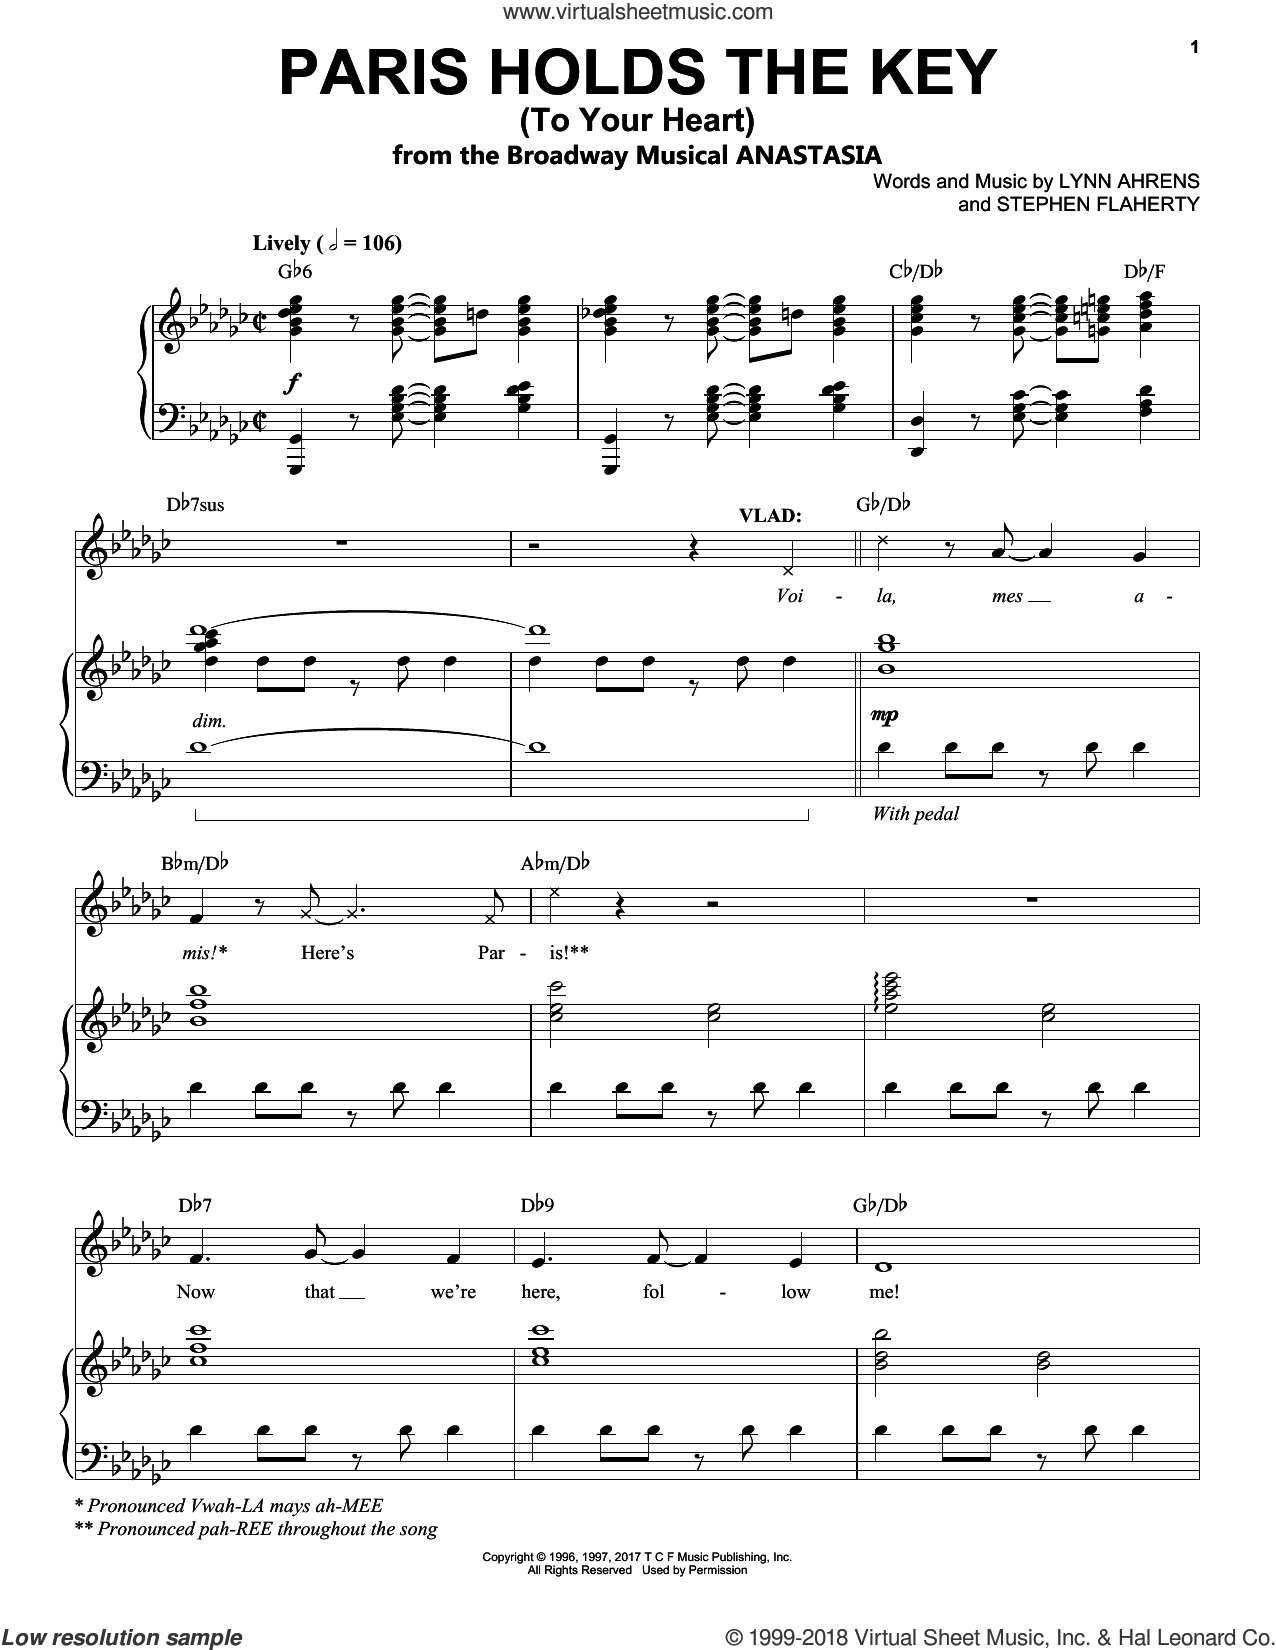 Paris Holds The Key (To Your Heart) sheet music for voice and piano by Stephen Flaherty and Lynn Ahrens, intermediate skill level